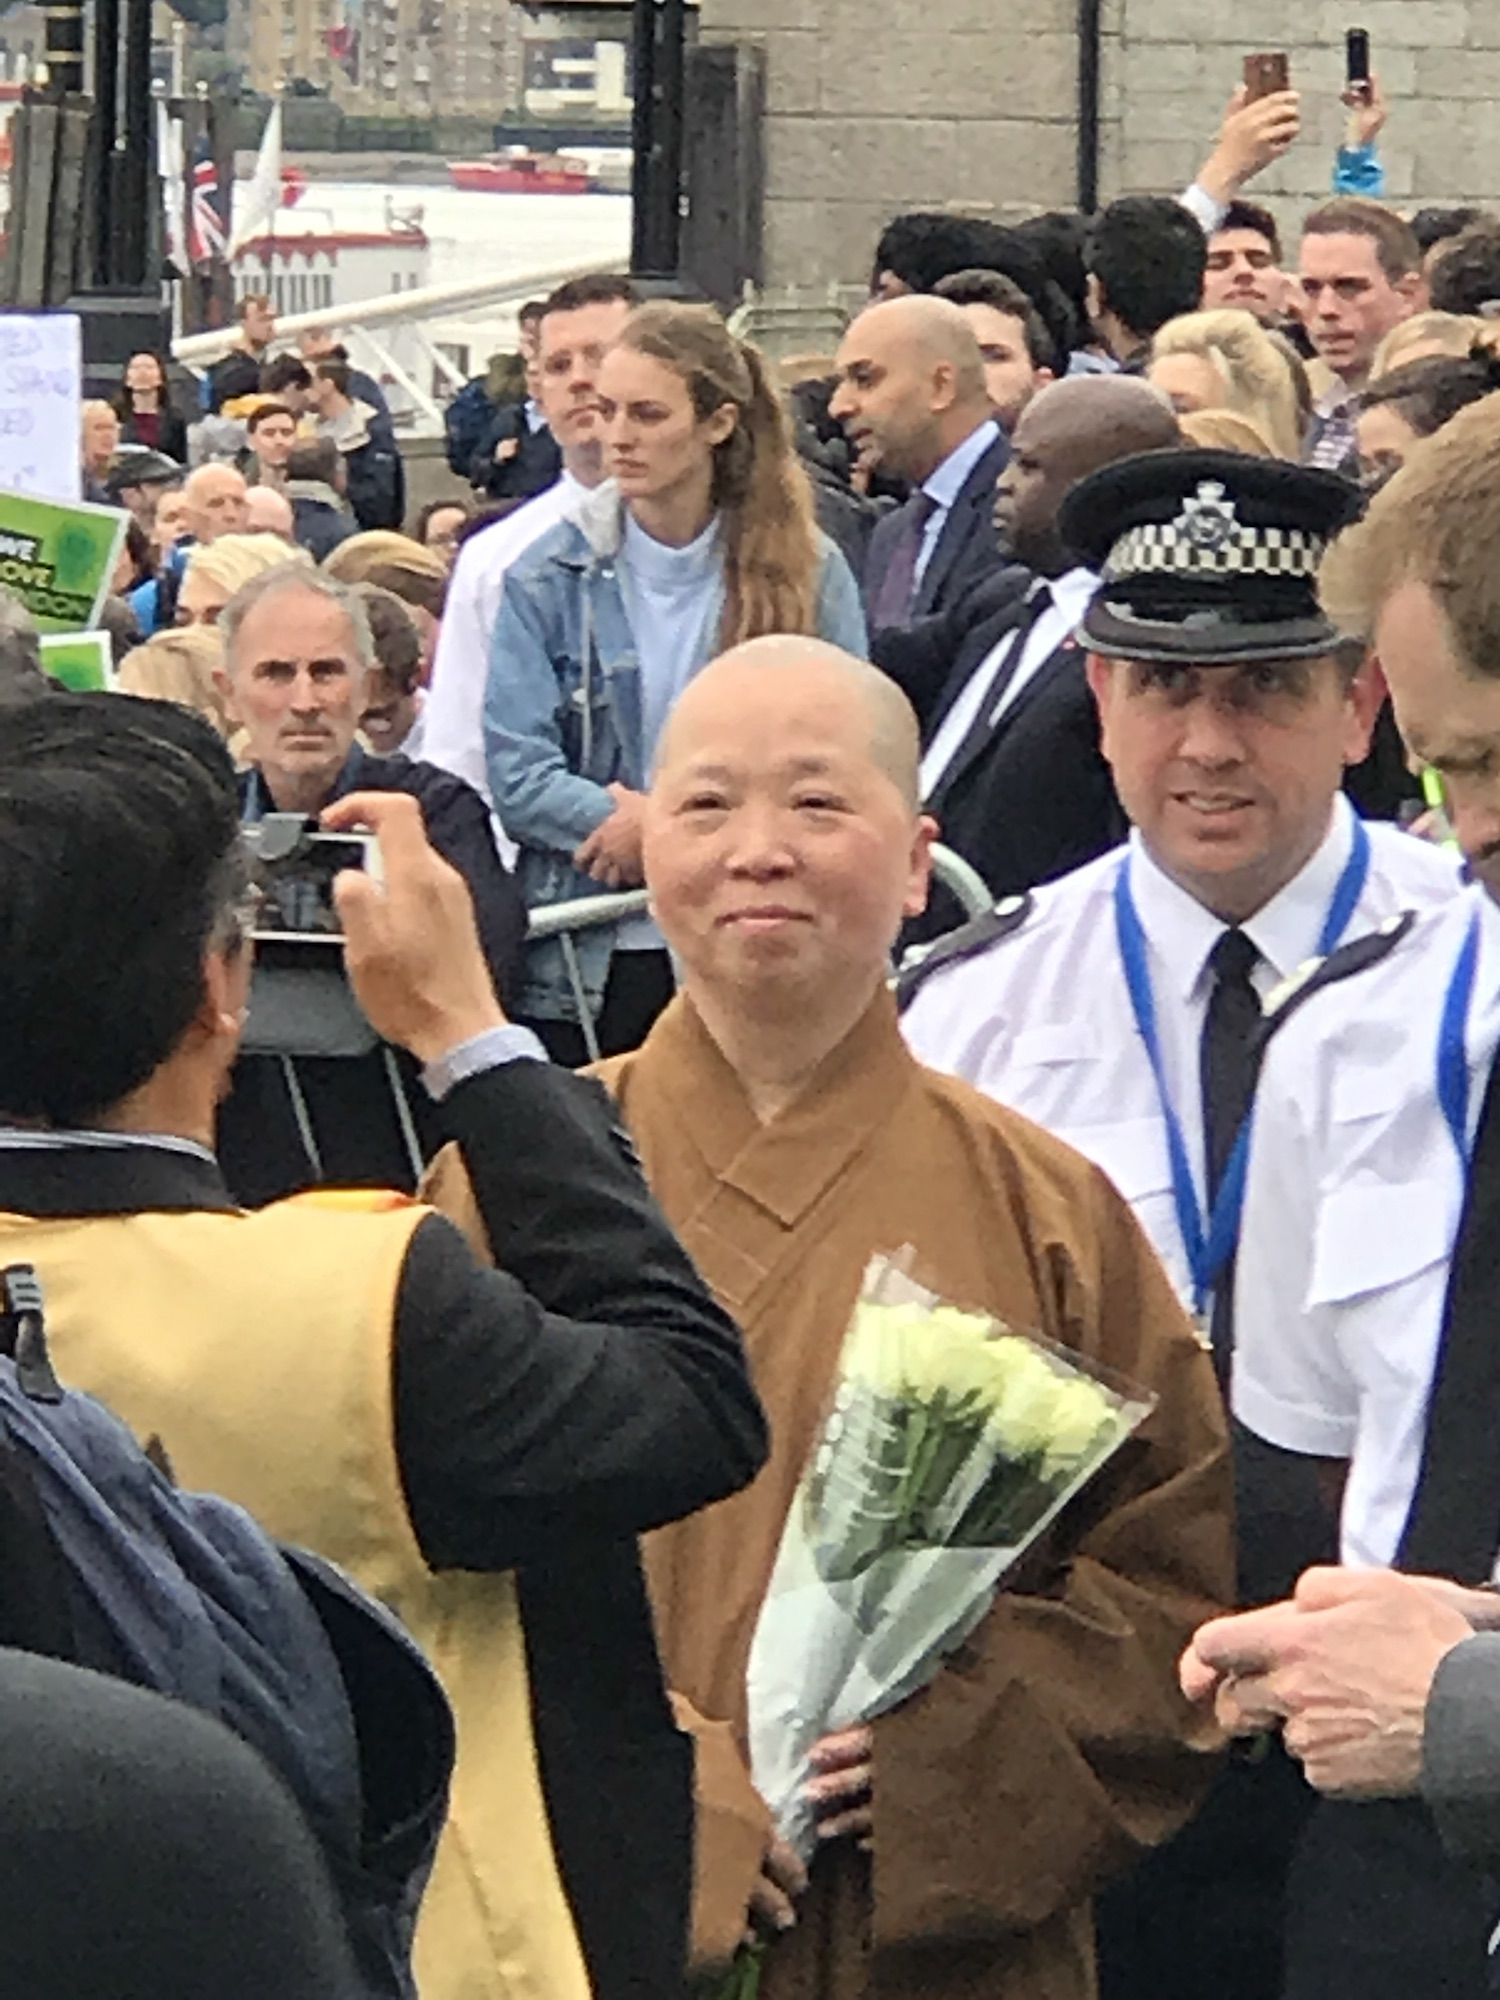 A Monk with flowers paying his respects for the victims of the London Bridge Terrorist Attack